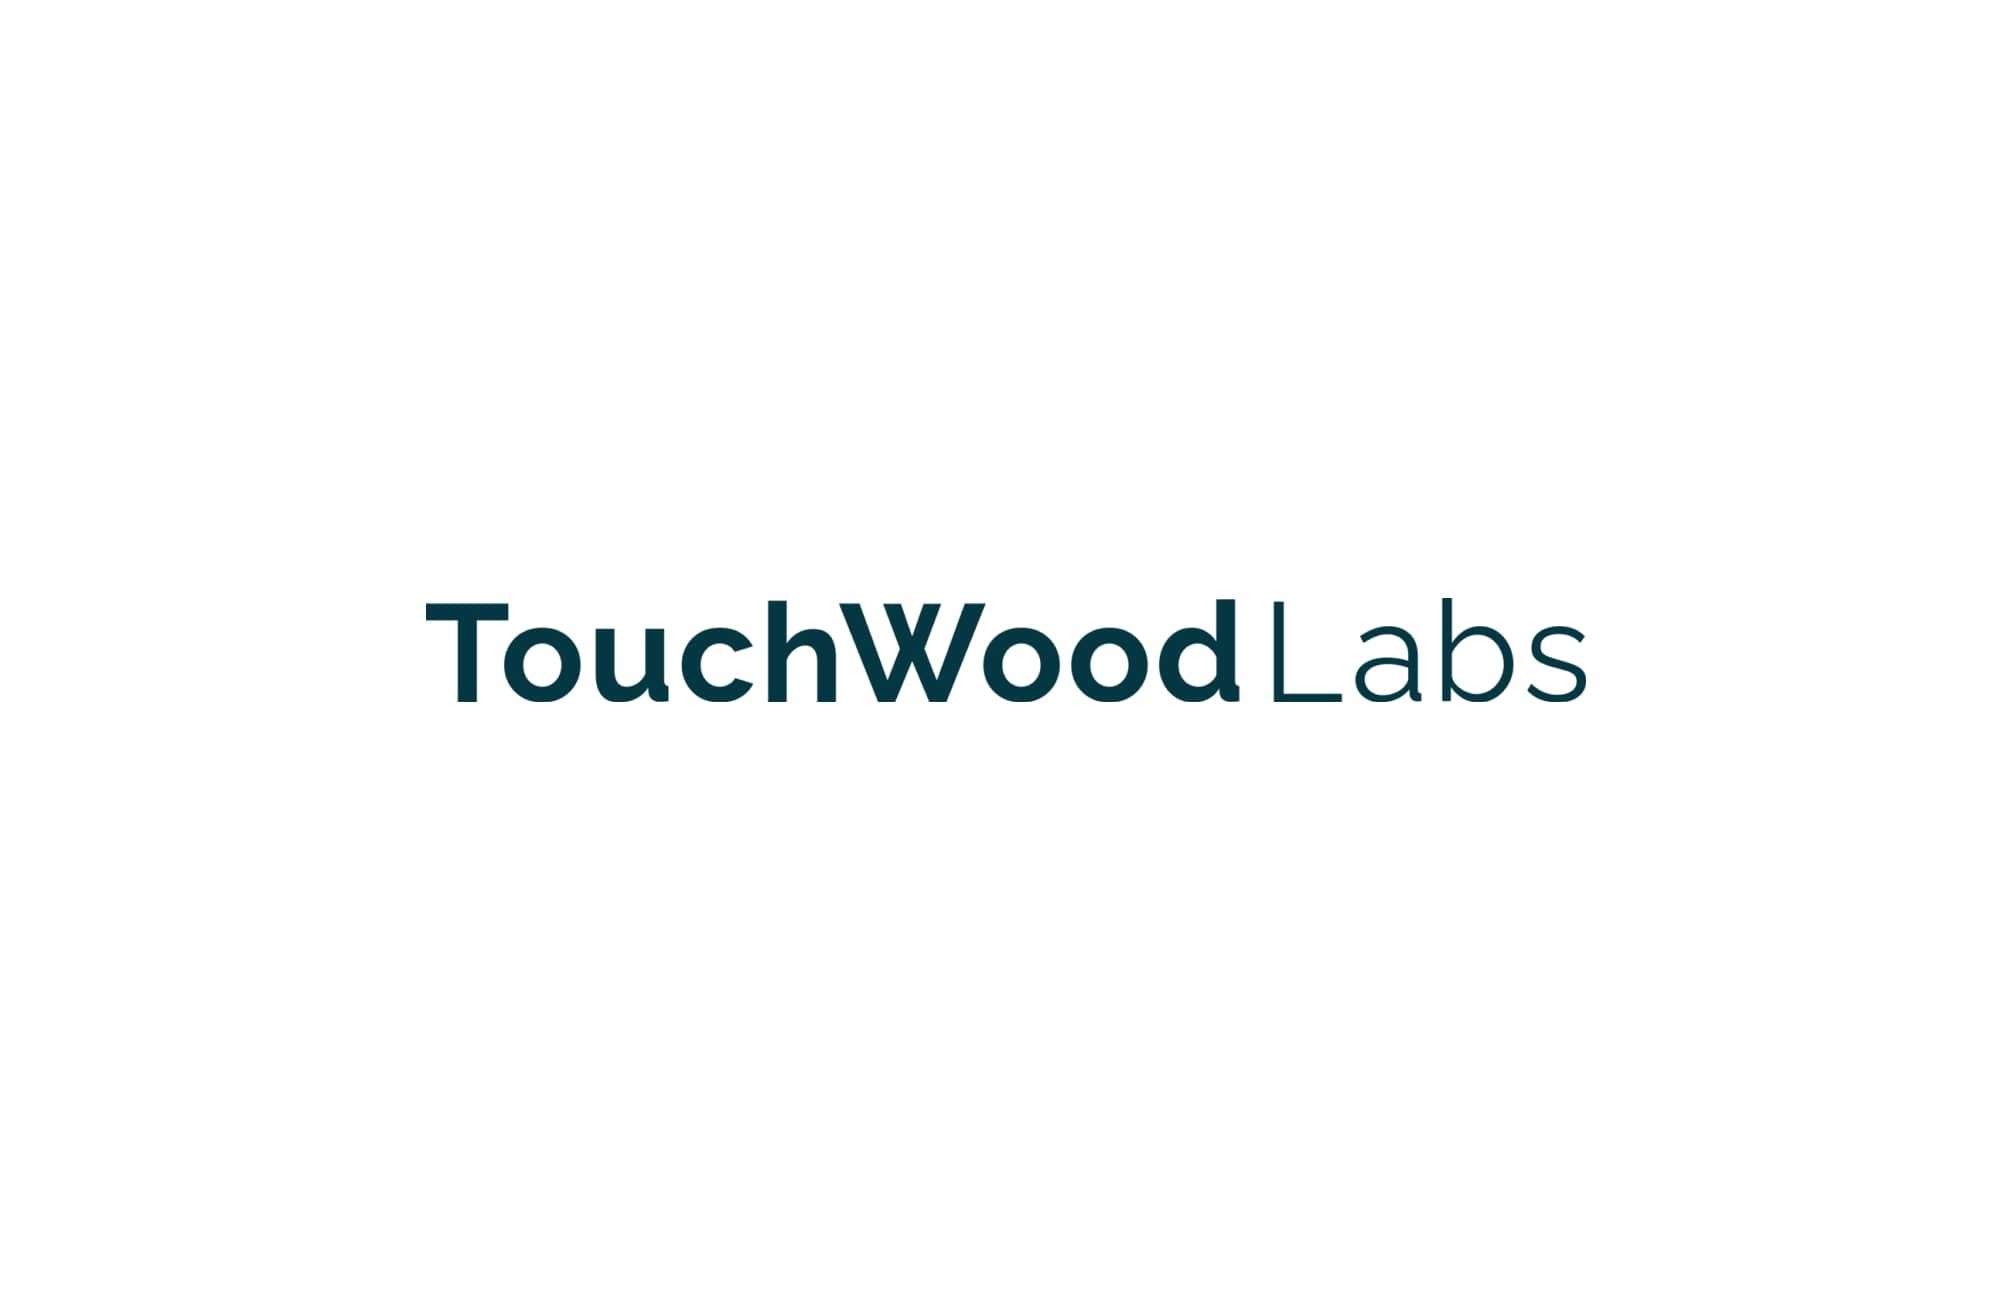 TouchWood Labs, Inc.